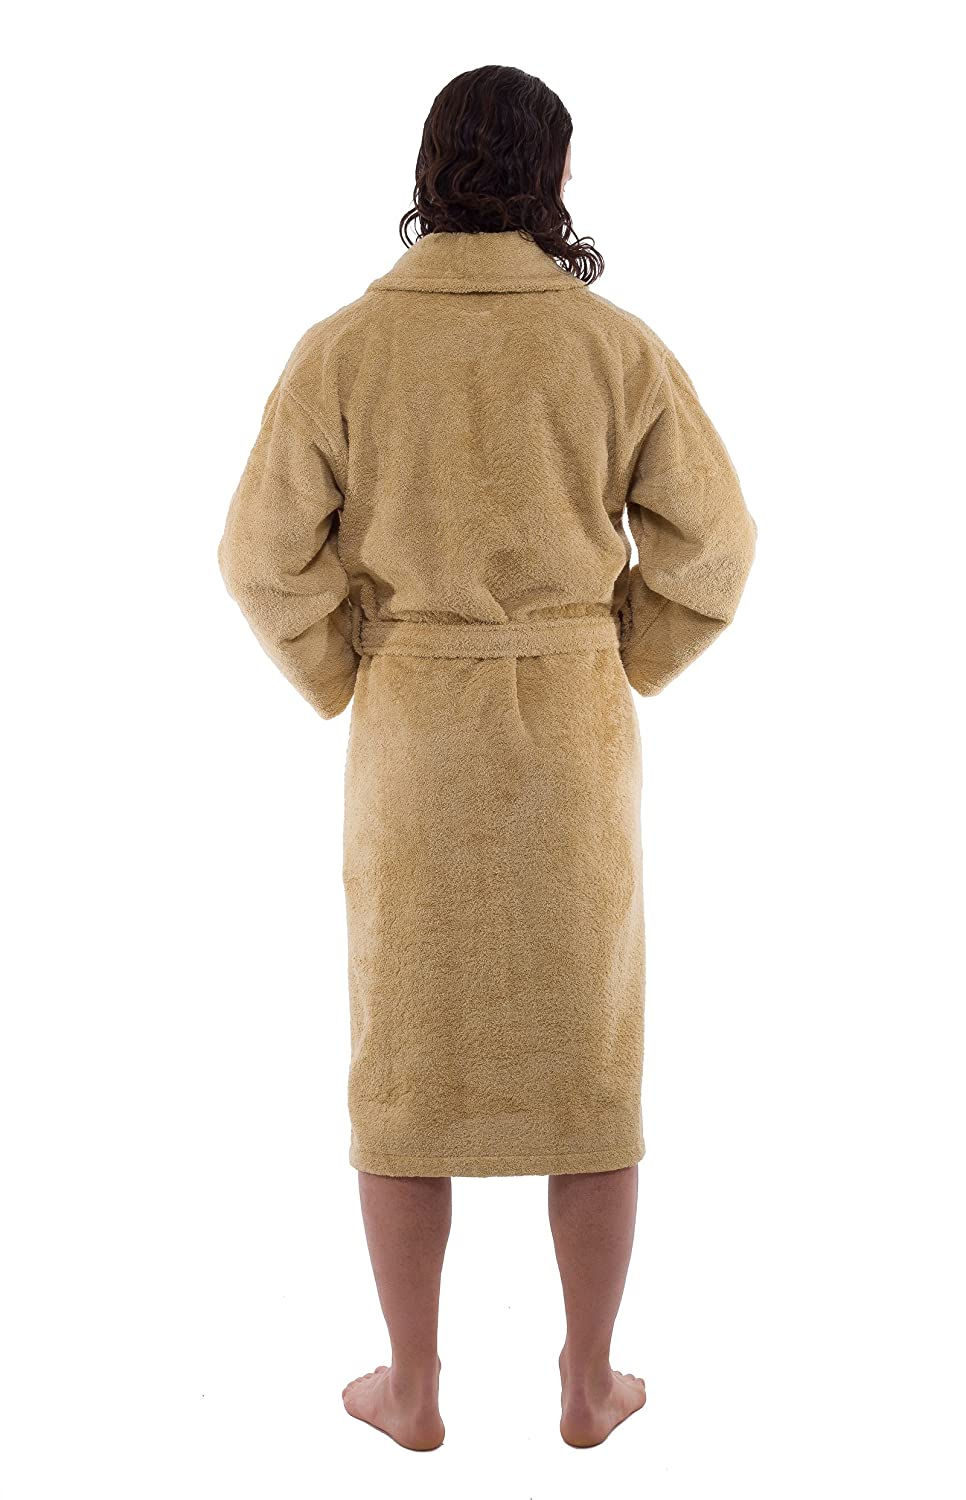 c753a9db6d Amazon.com  Luxury Terry Cloth Bathrobes - Premium Hotel and Spa Robes Made  with 100% Turkish Cotton  Home   Kitchen